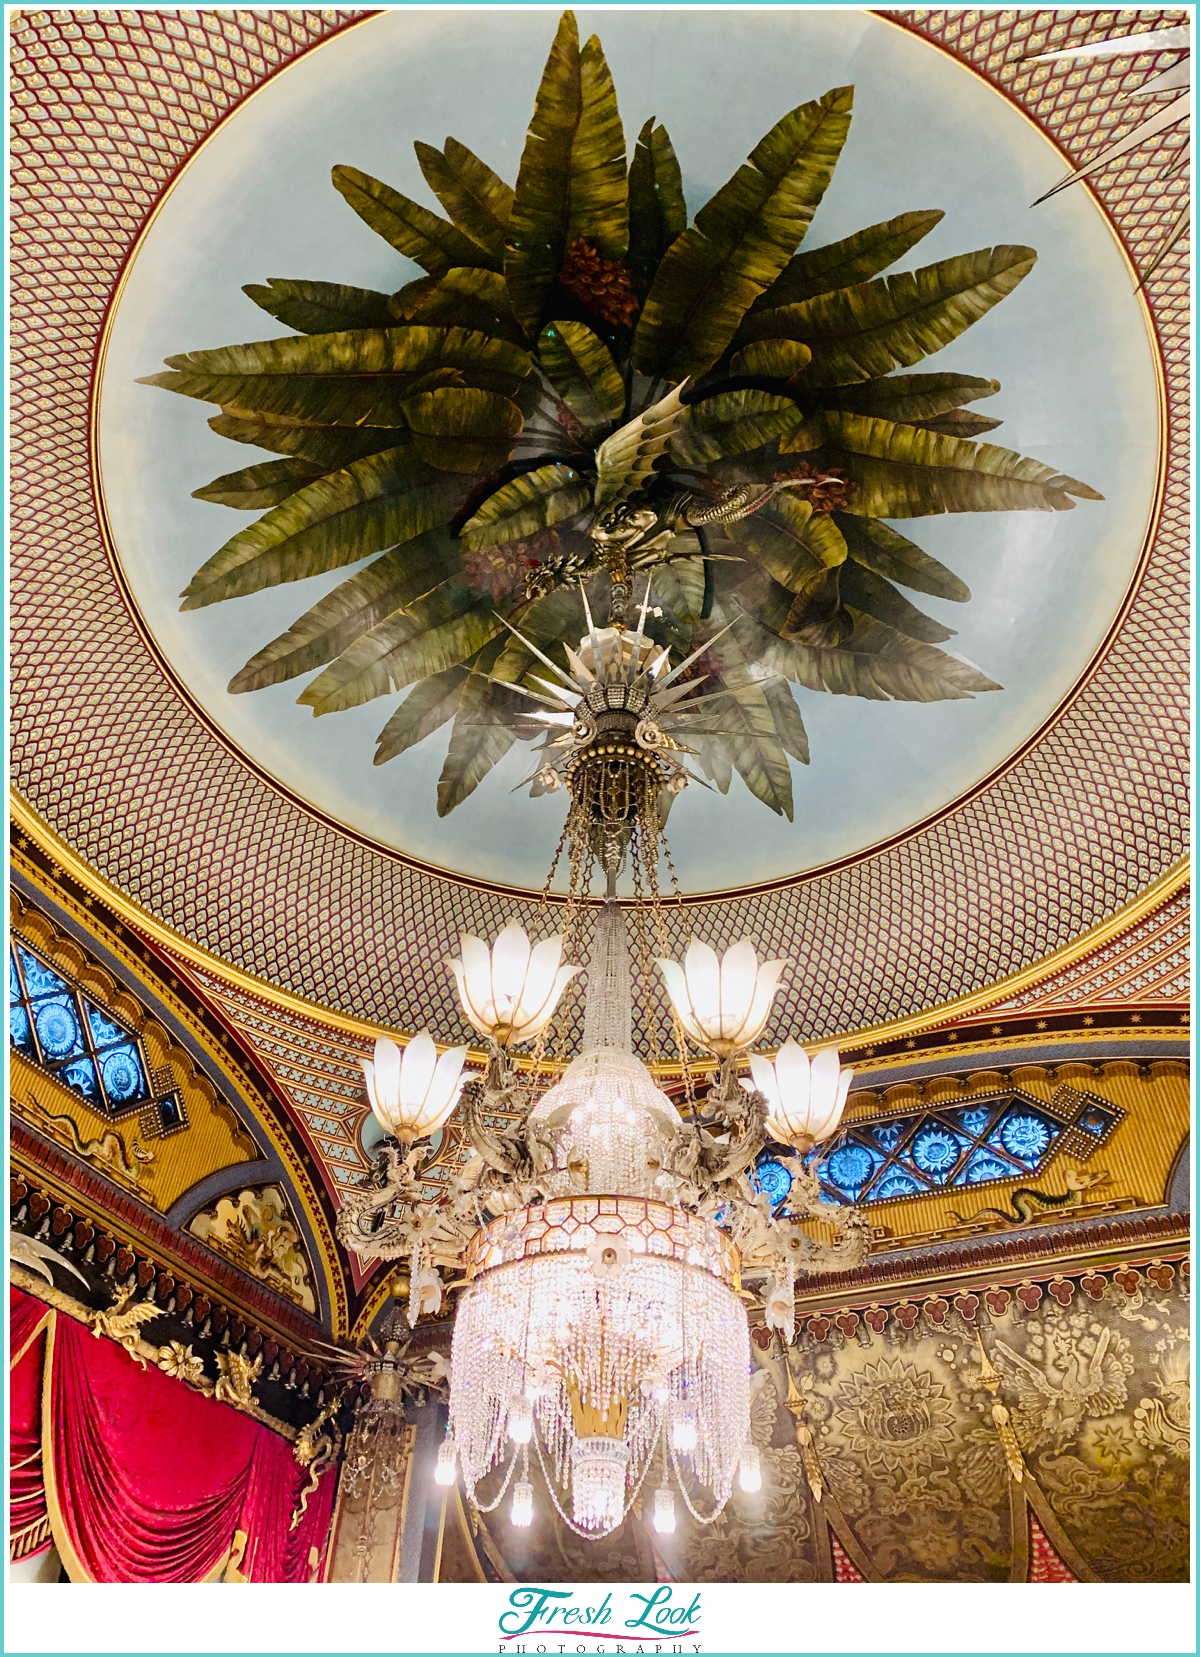 Chandelier at the Royal Pavilion Brighton